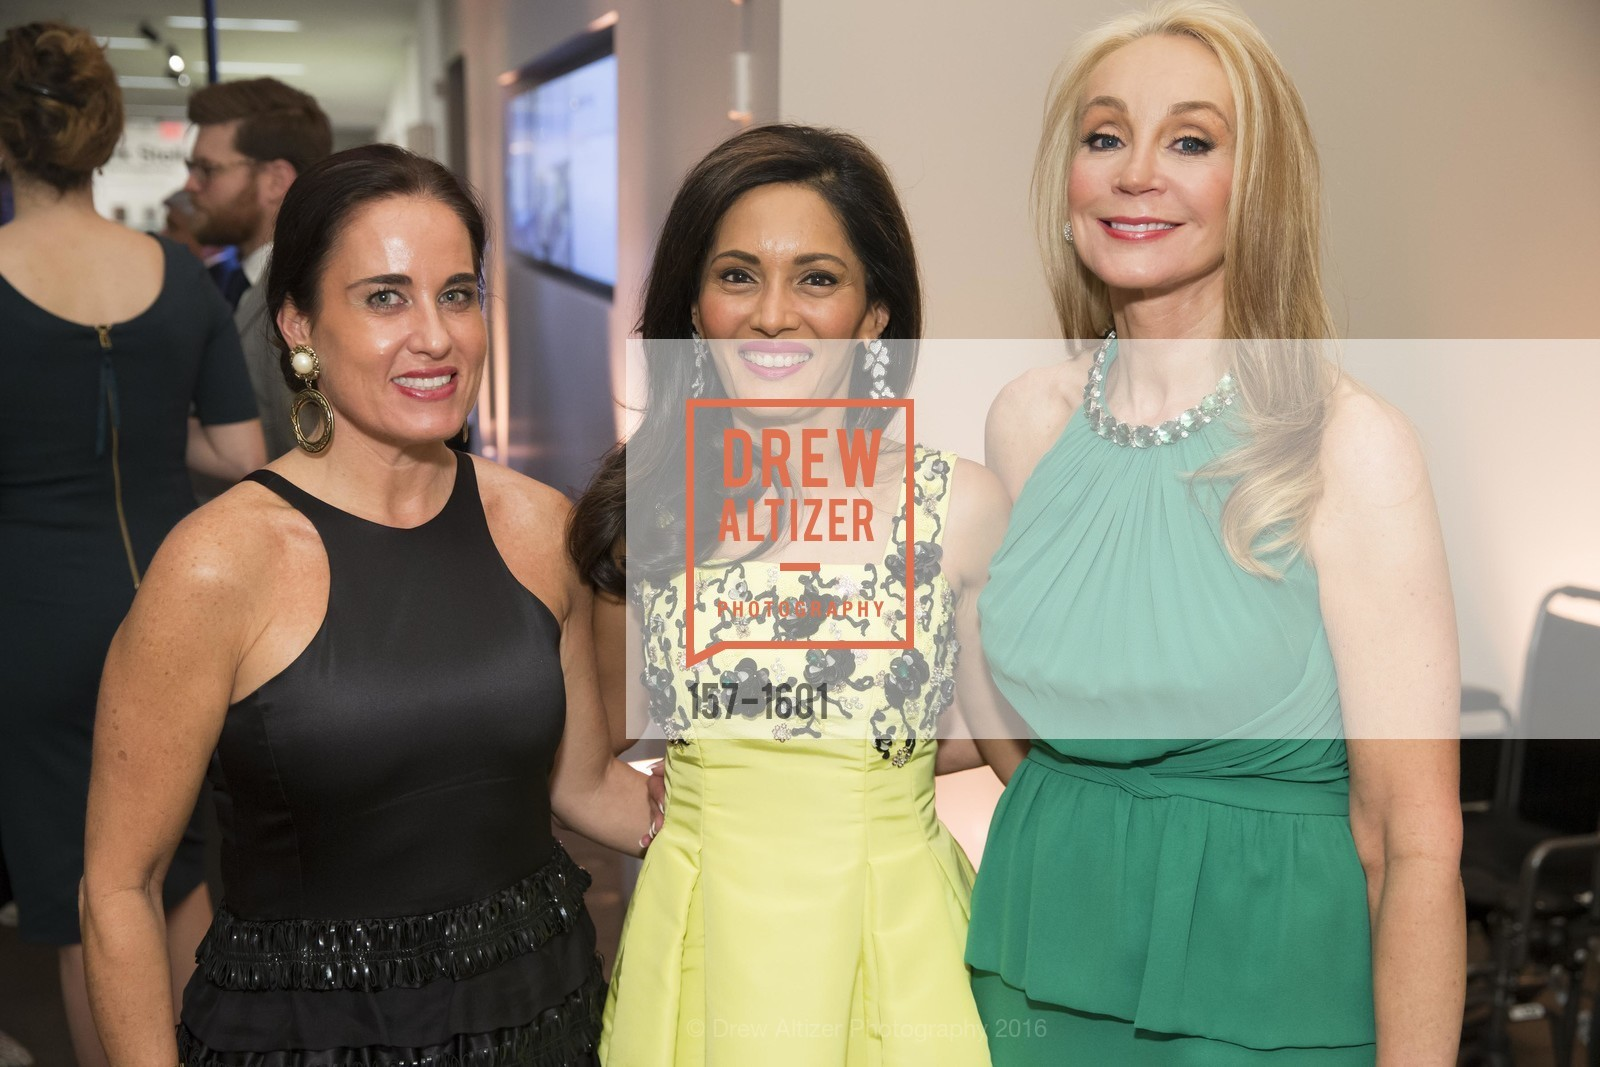 Natalia Urrutia, Komal Shah, Giselle Anna Parry, Dinner with Frank Stella at the de Young, de Young Museum. 2525 Van Ness St, November 16th, 2016